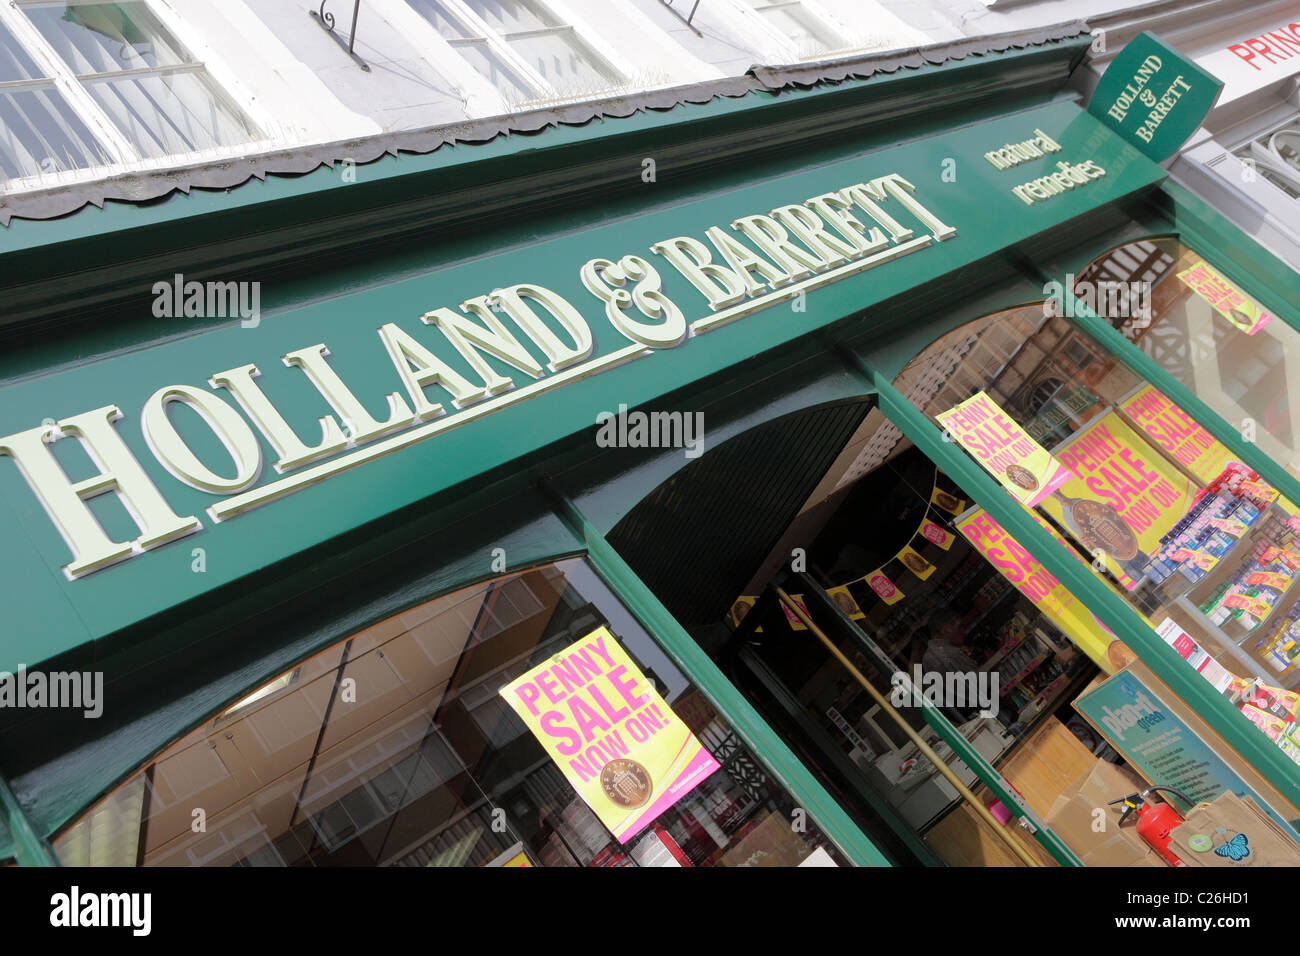 Health Food Stores Stock Photos & Health Food Stores Stock